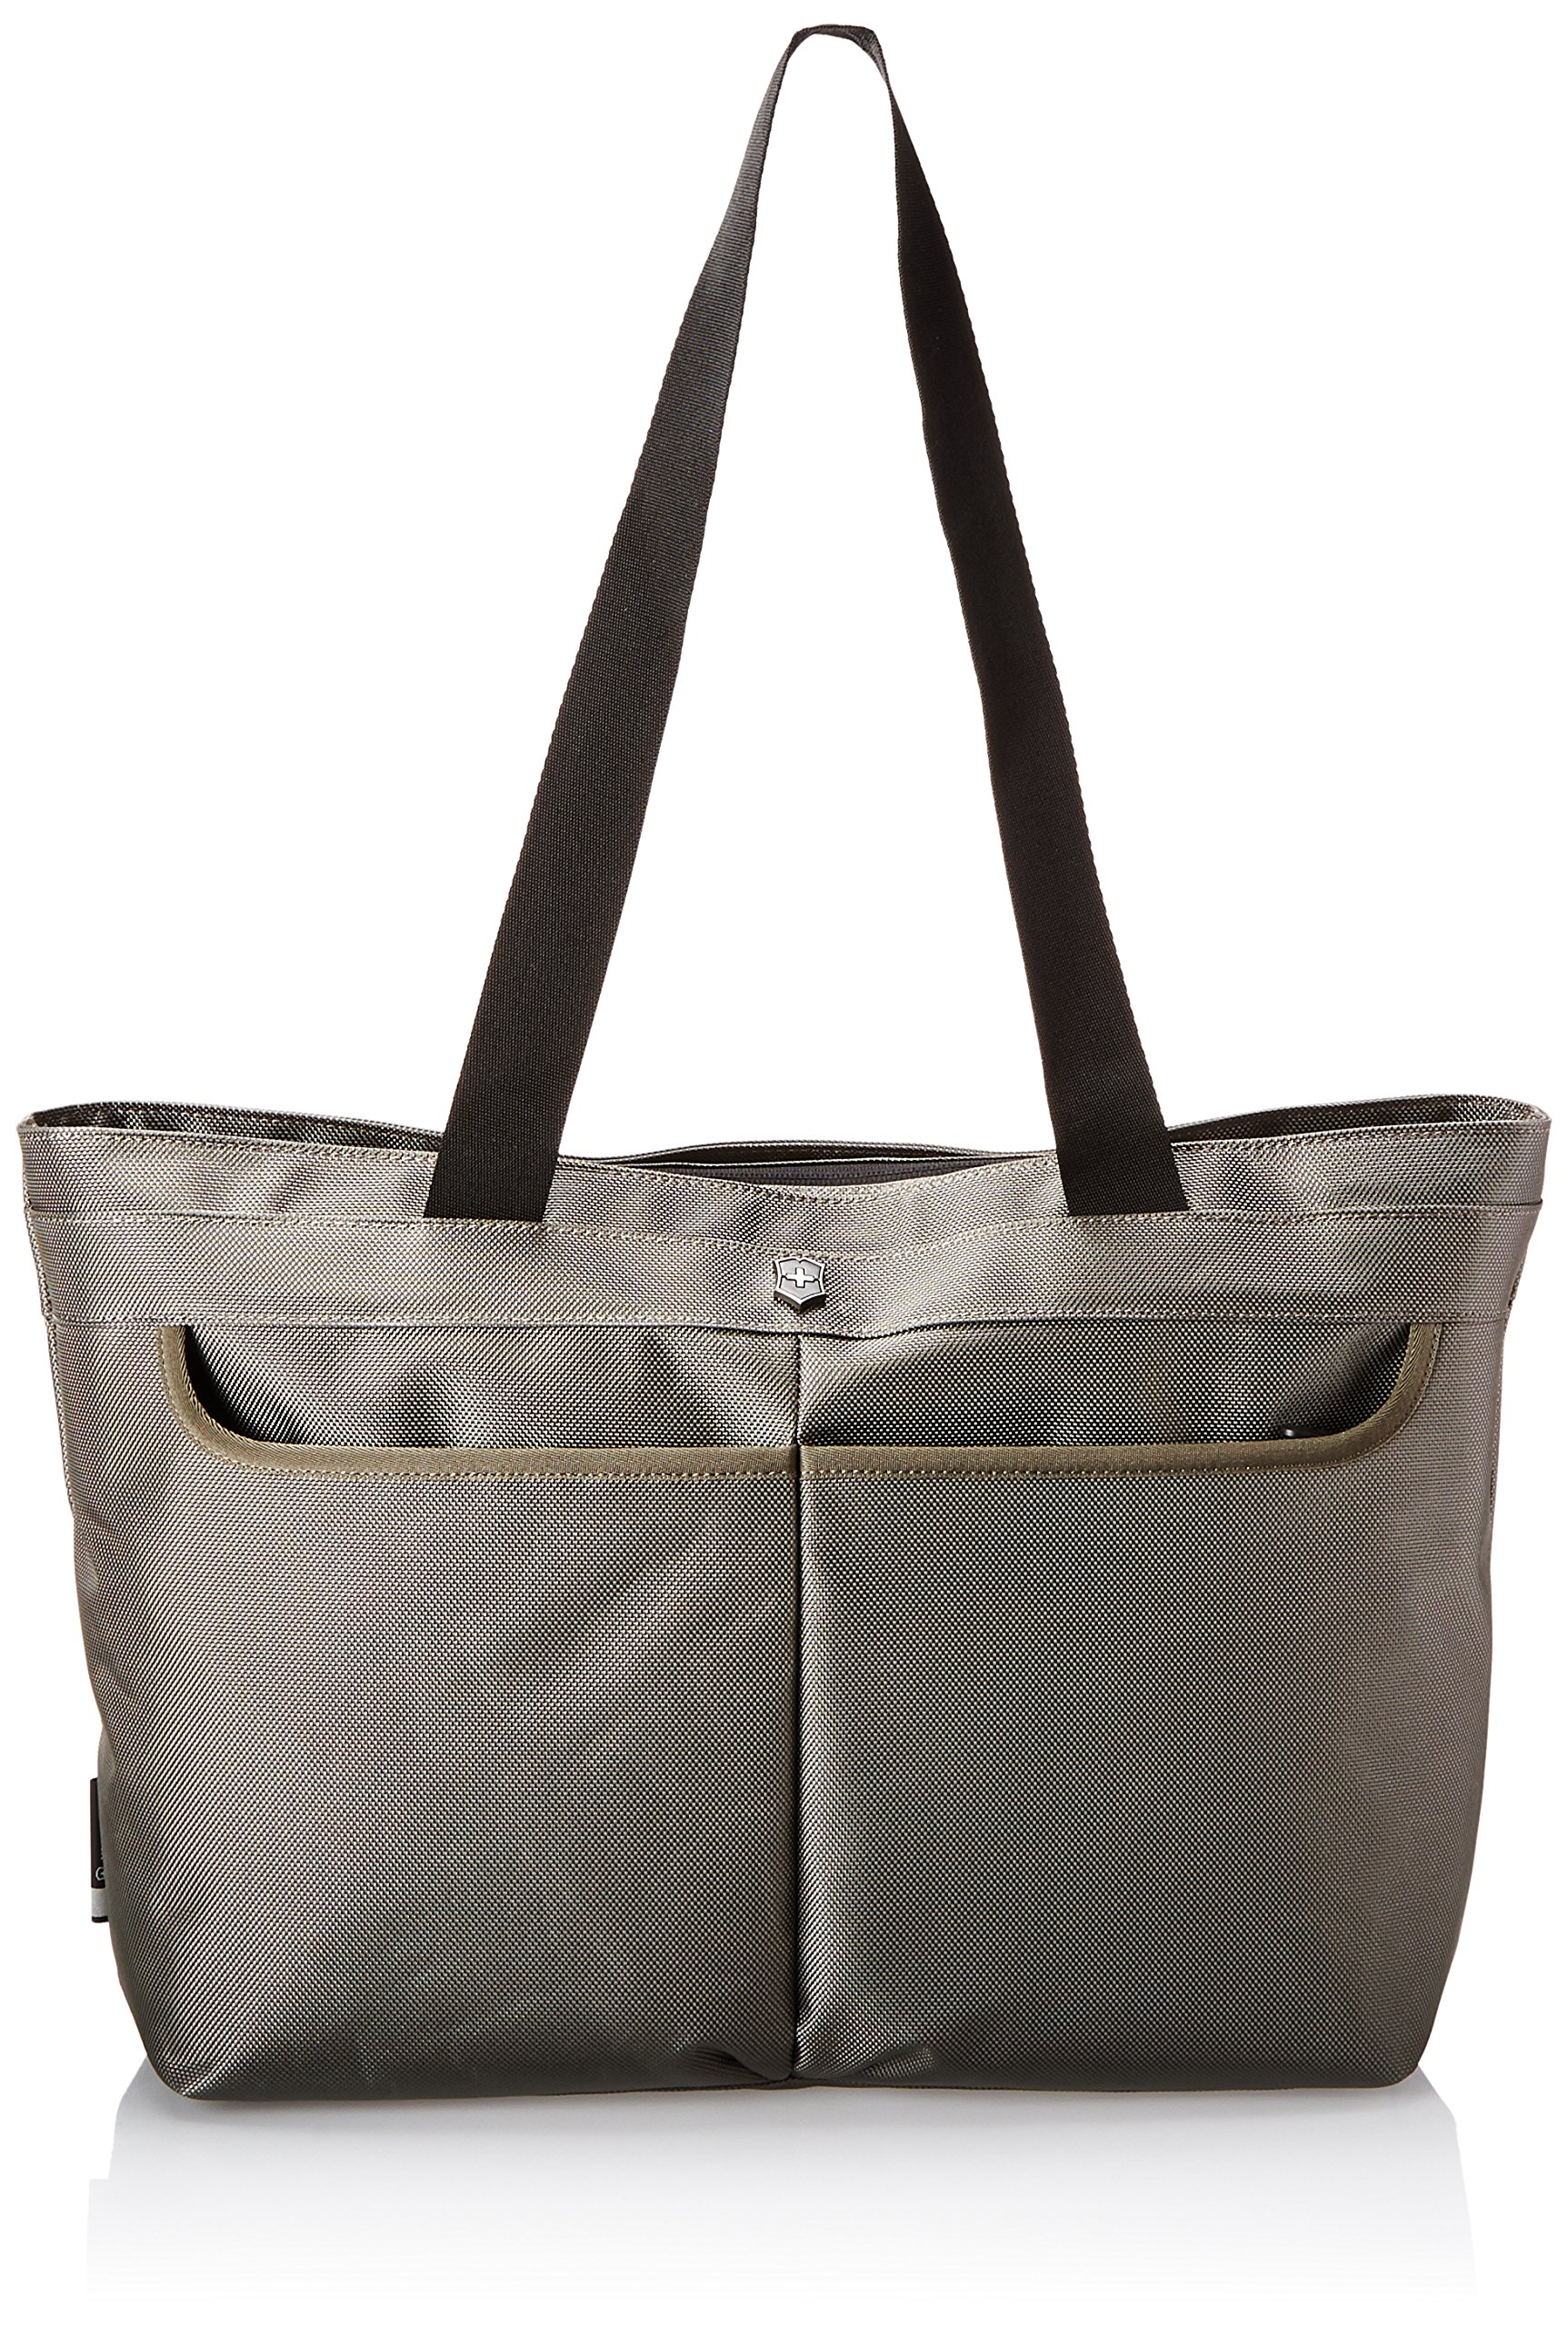 Victorinox Werks Traveler 5.0 WT Shopping Tote, Olive Green, One Size by Victorinox (Image #1)